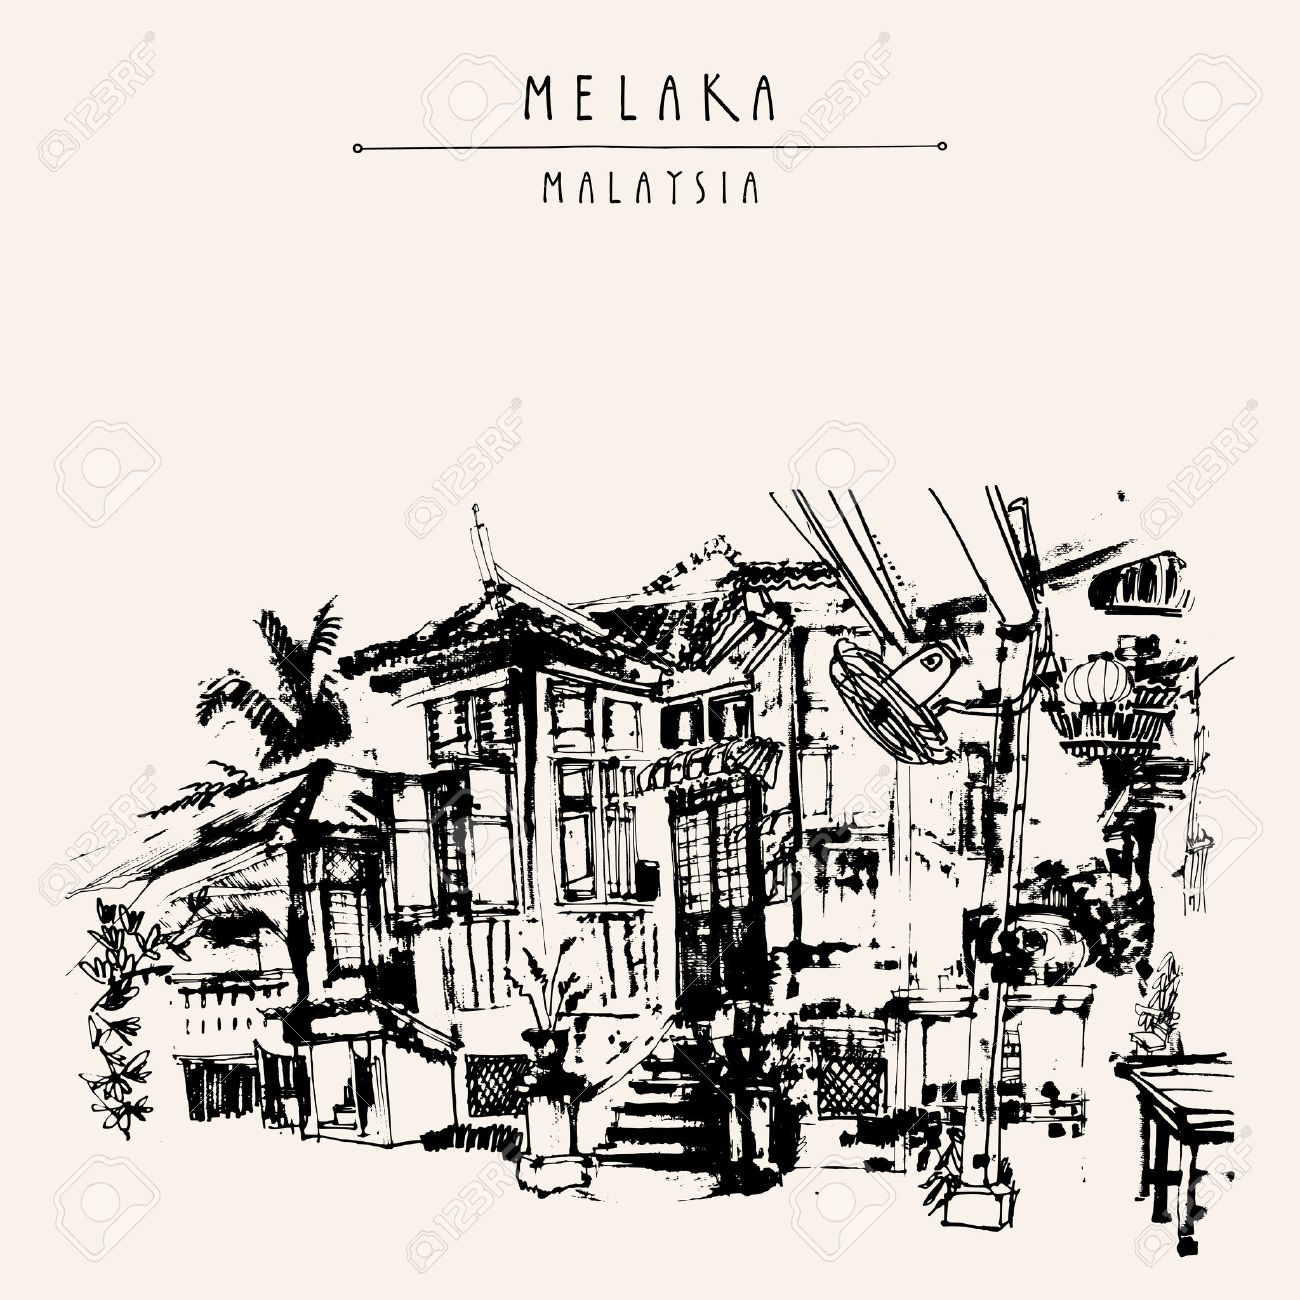 An old Chinese wooden house in Melaka, Malaysia, Southeast Asia. Travel sketch. Hand drawn touristic vintage postcard, poster or book illustration in vector - 64118005